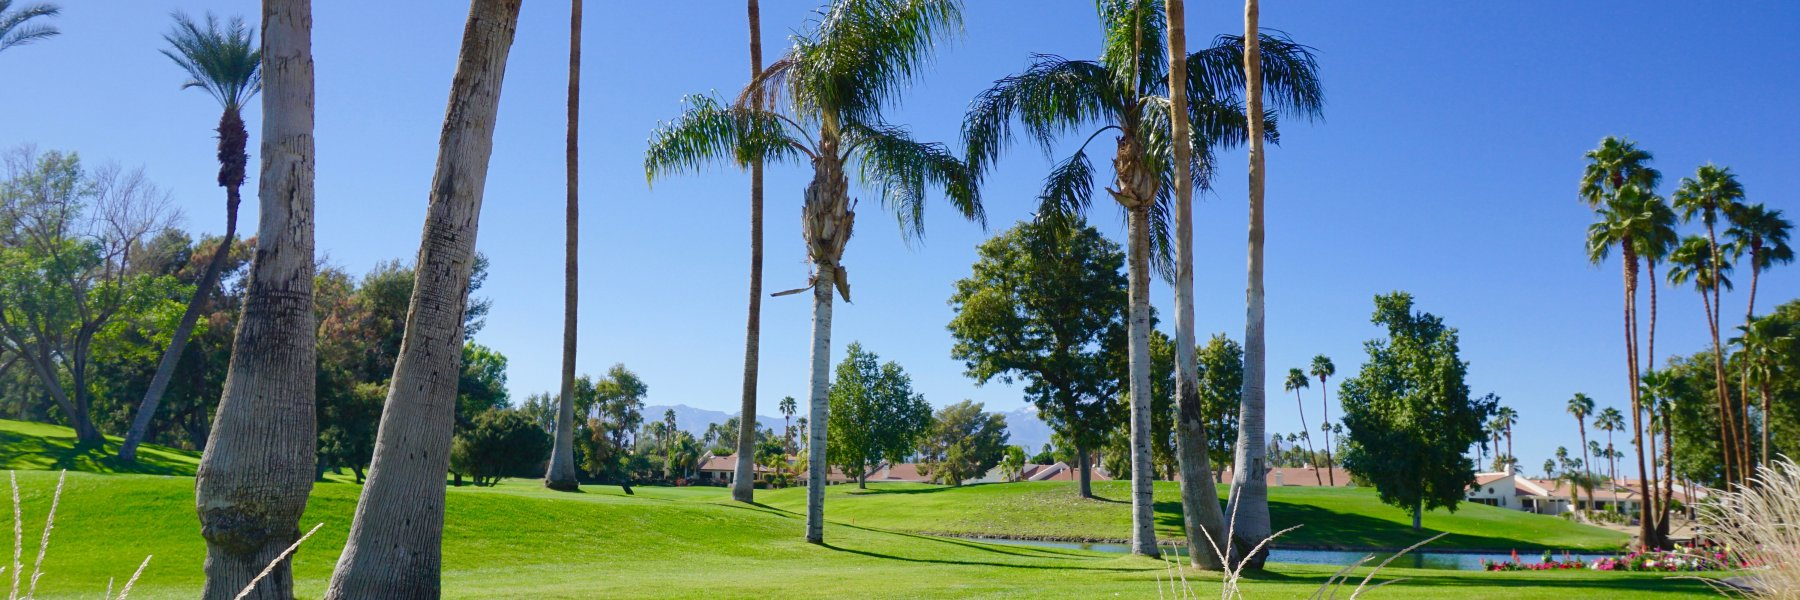 Avondale Country Club is a community of homes in Palm Desert California